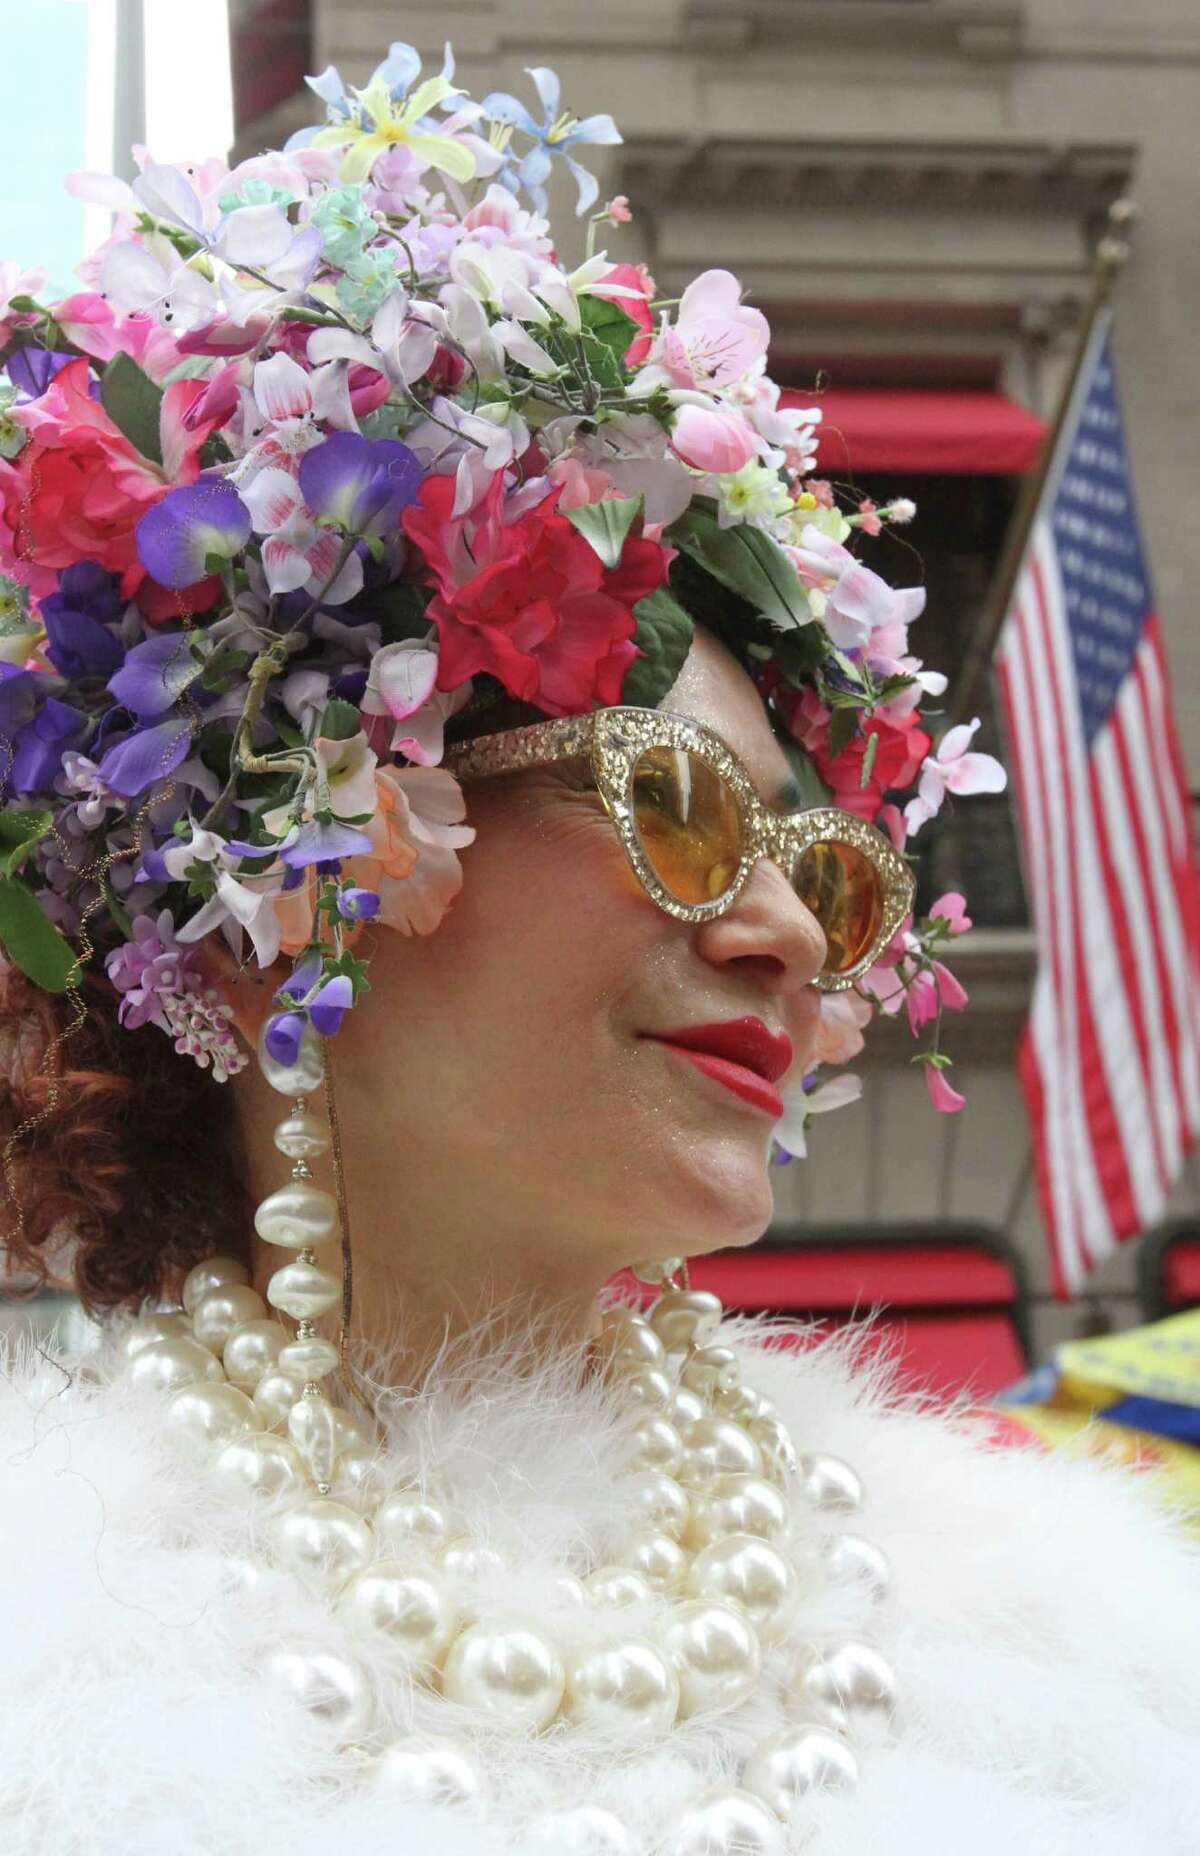 Dressed for the occasion, Purely Patricia Fox, of New York, poses for photographs on New York's Fifth Avenue as she takes part in the Easter Parade, Sunday, March 31, 2013.